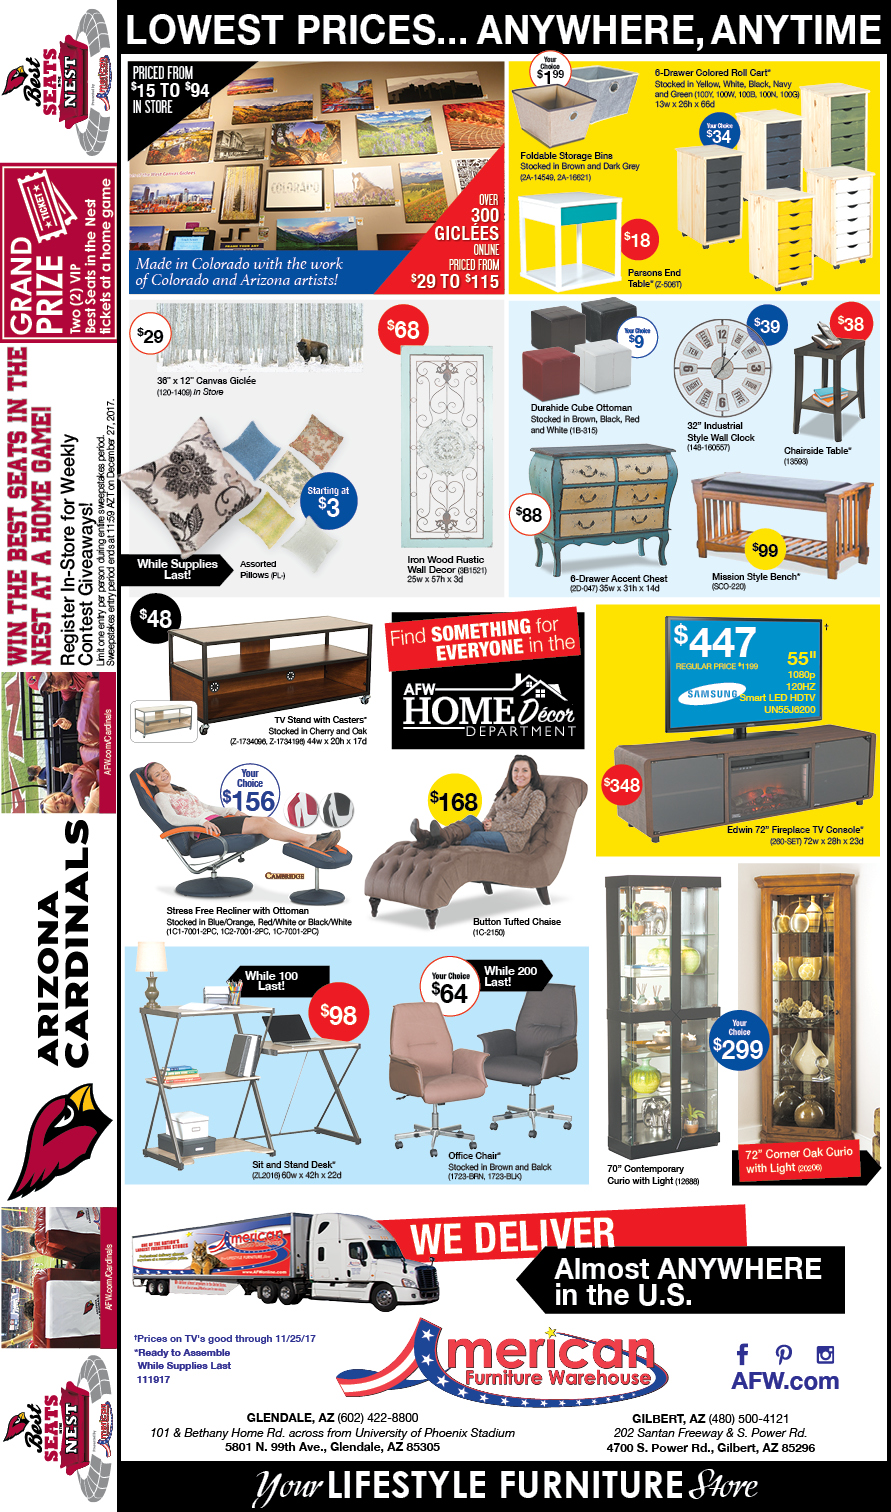 Arizona Furniture Ads | Lowest Prices on Furniture